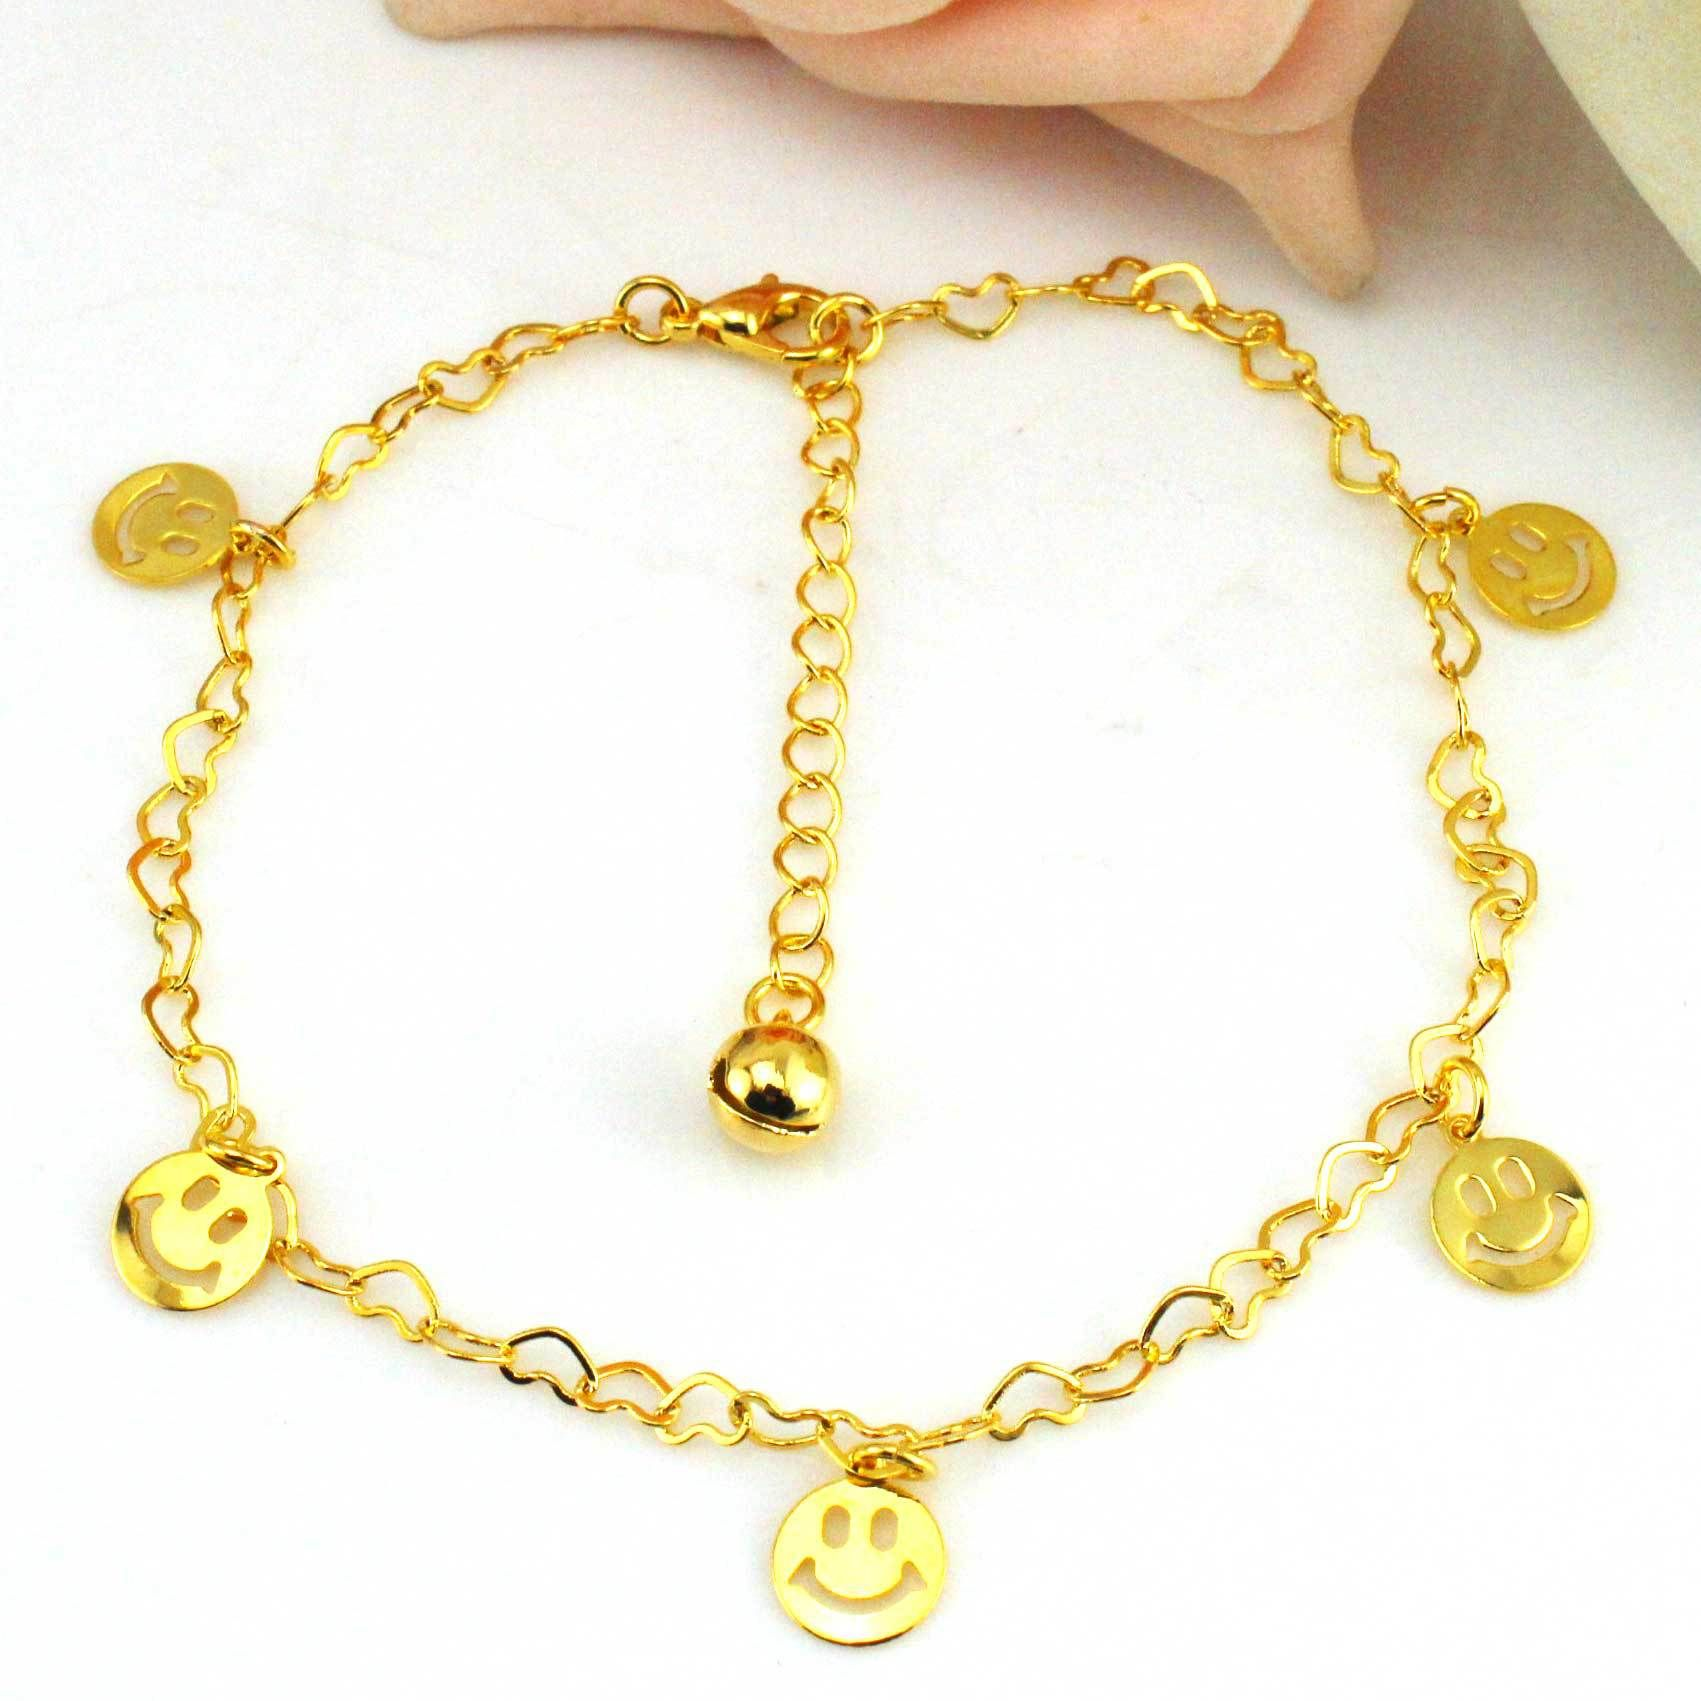 unique corazones design charms anklet heart products filled pie ankle de foot and bracelet gold women jewelry wrist evil set corazon pulso